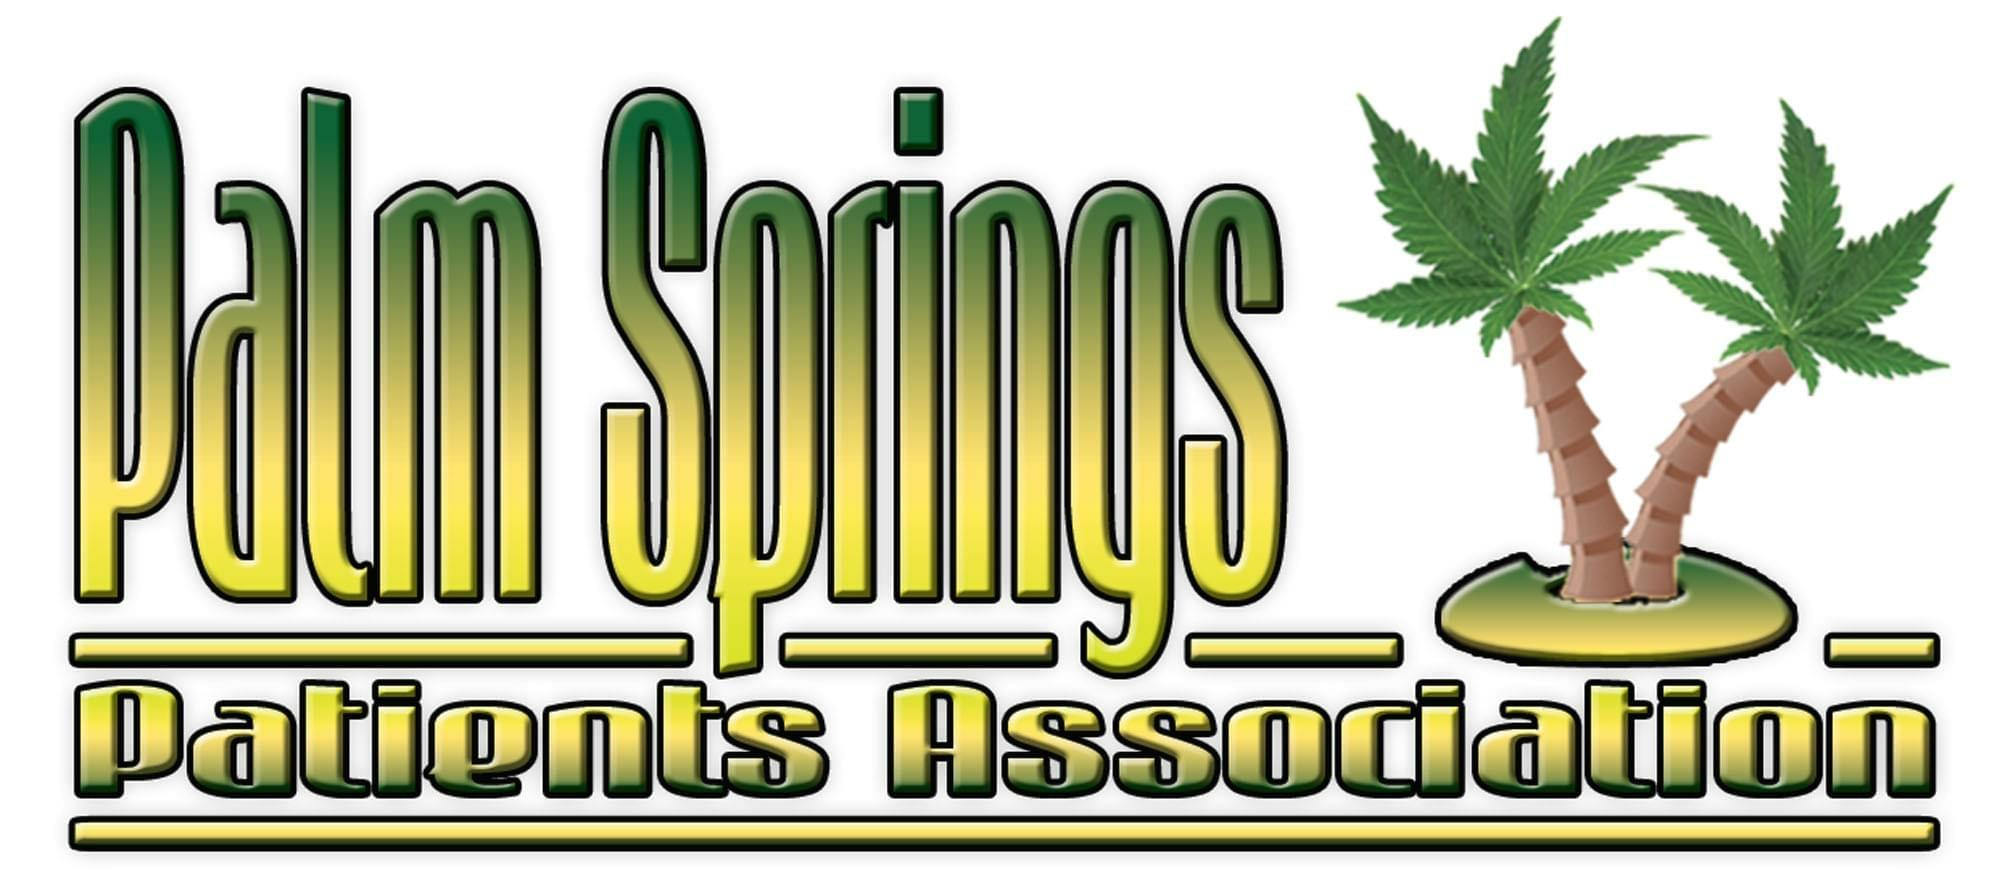 Palm Springs Patients Association